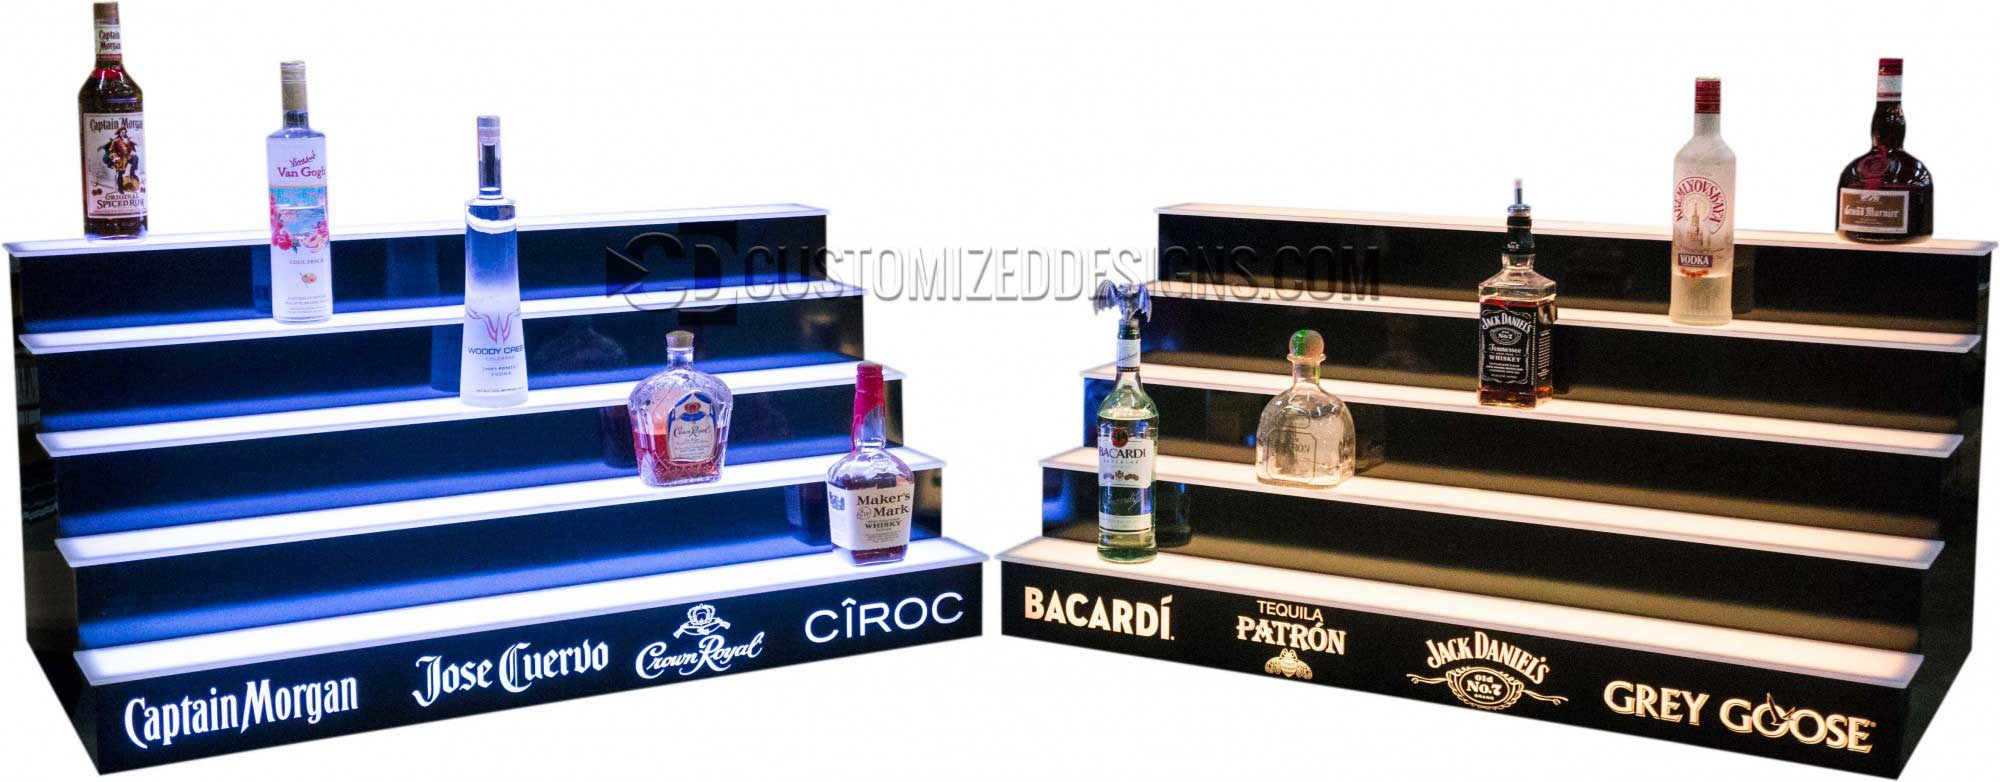 5 Tier Liquor Shelves w/ Multiple Liquor Brand Logos